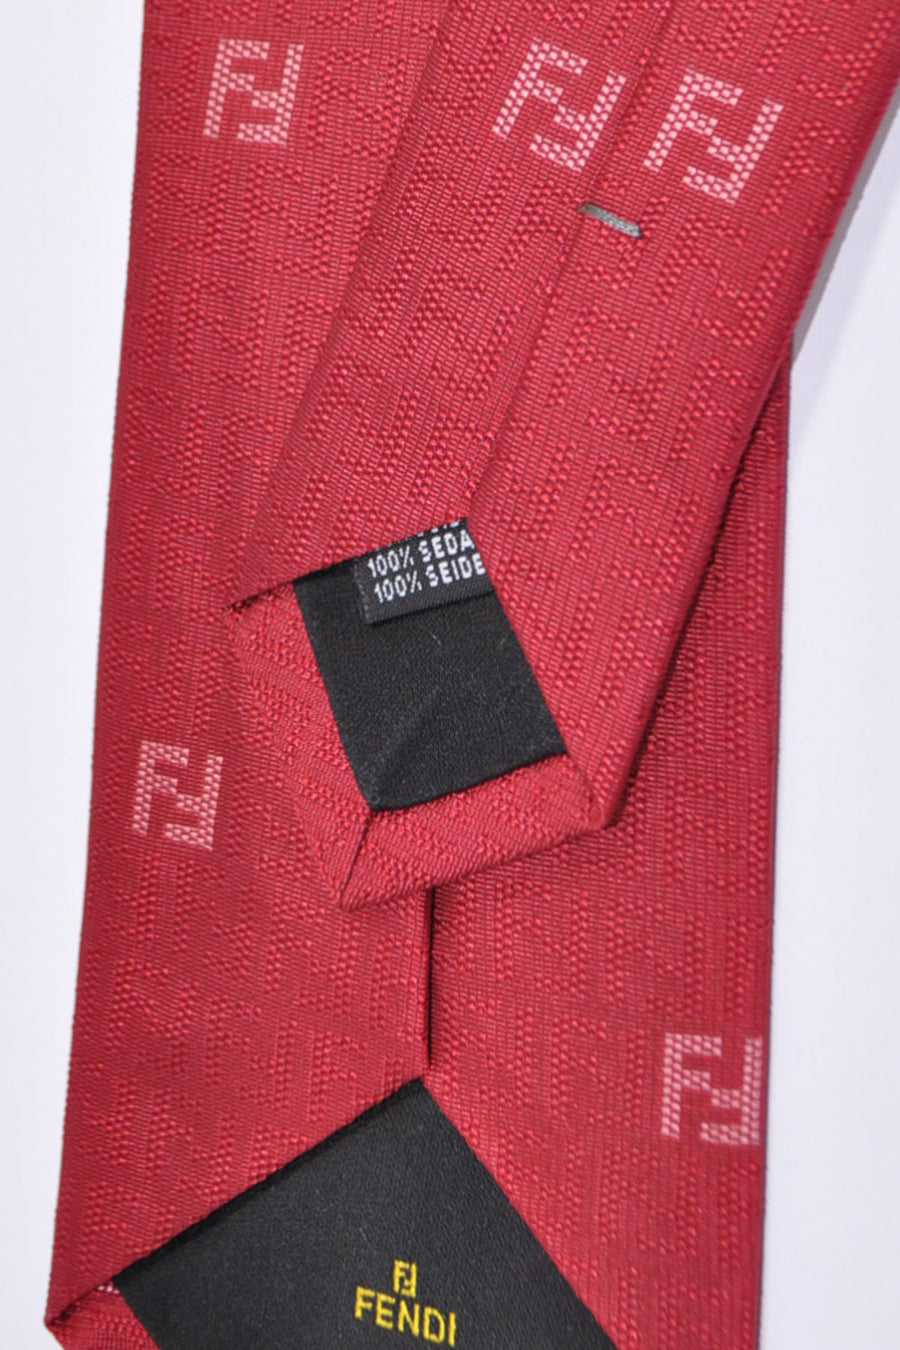 Fendi Silk Ties